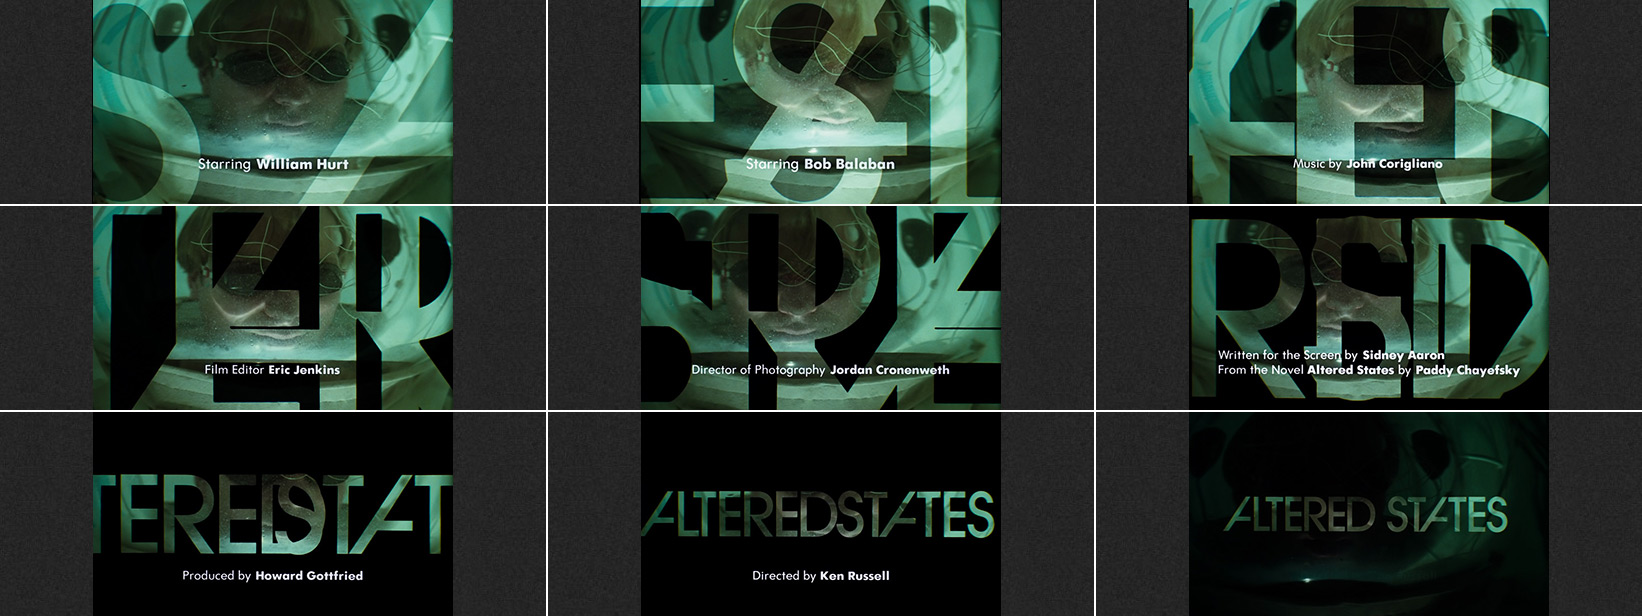 Altered States (1980) R/Greenberg Associates, Inc. - title sequence